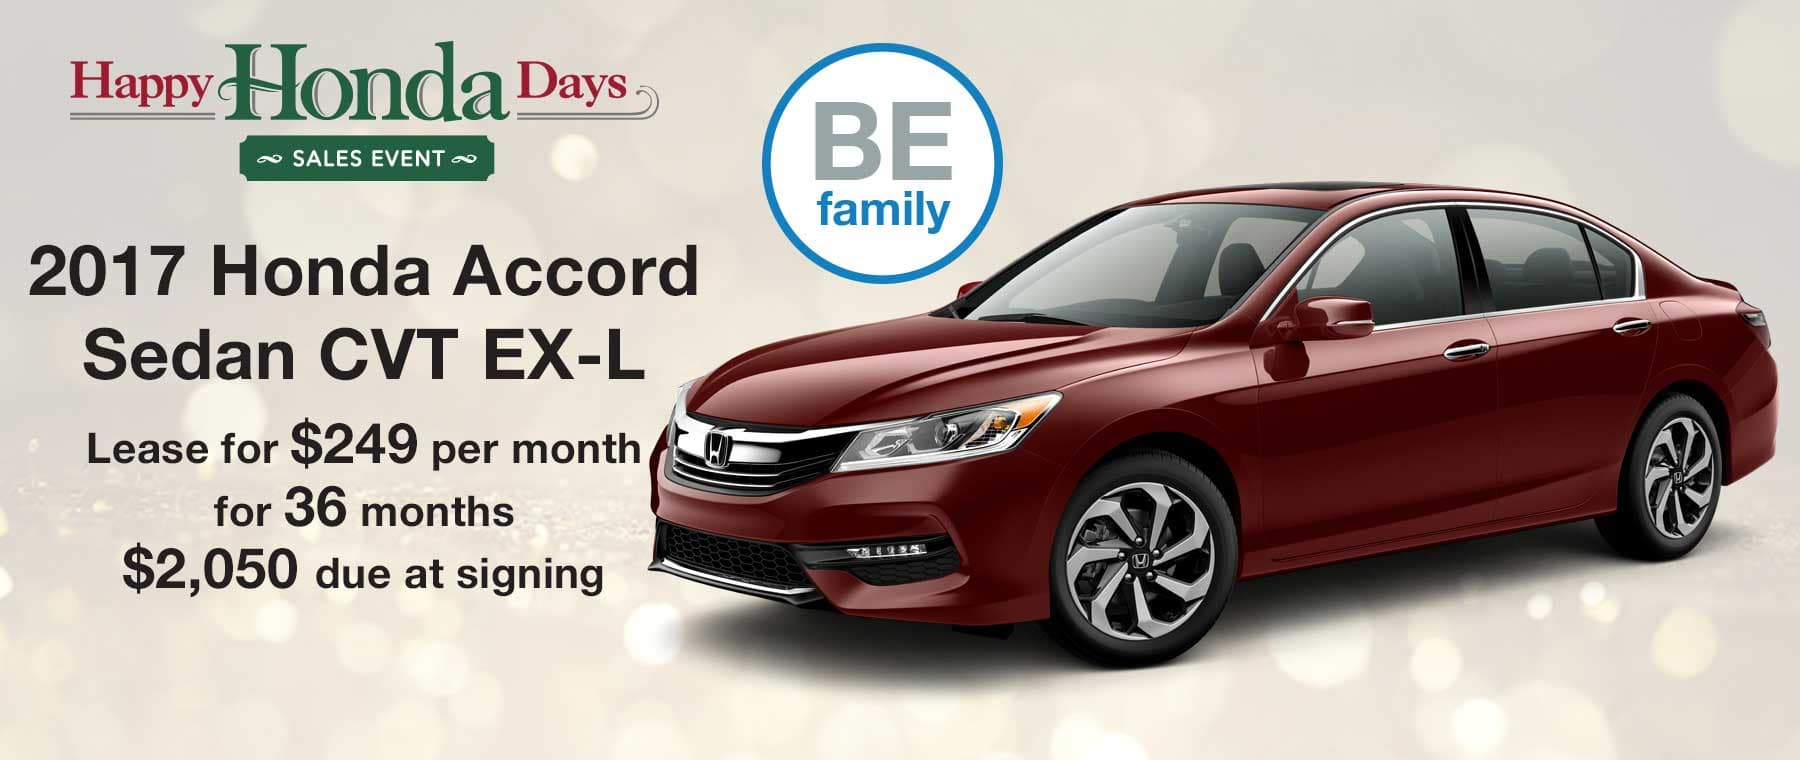 Lease a new 2017 Honda Accord Sedan for $249 per month with $2,050 due at signing